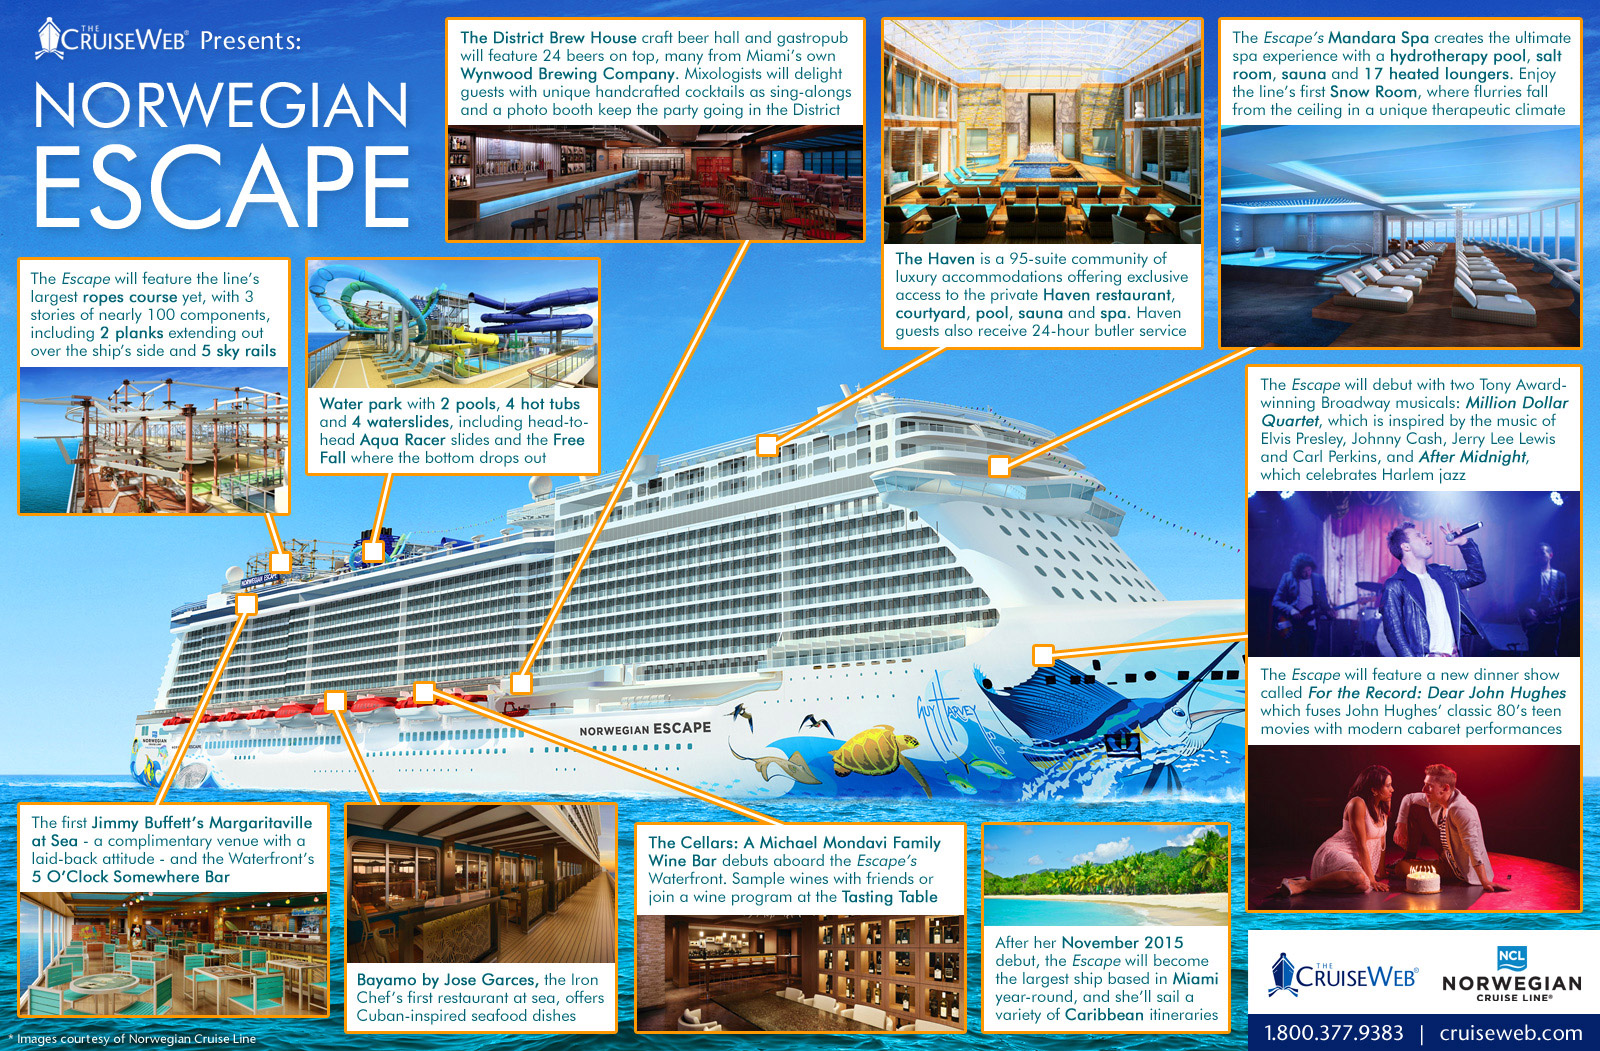 Norwegian Escape Cruise Ship 2018 And 2019 Norwegian